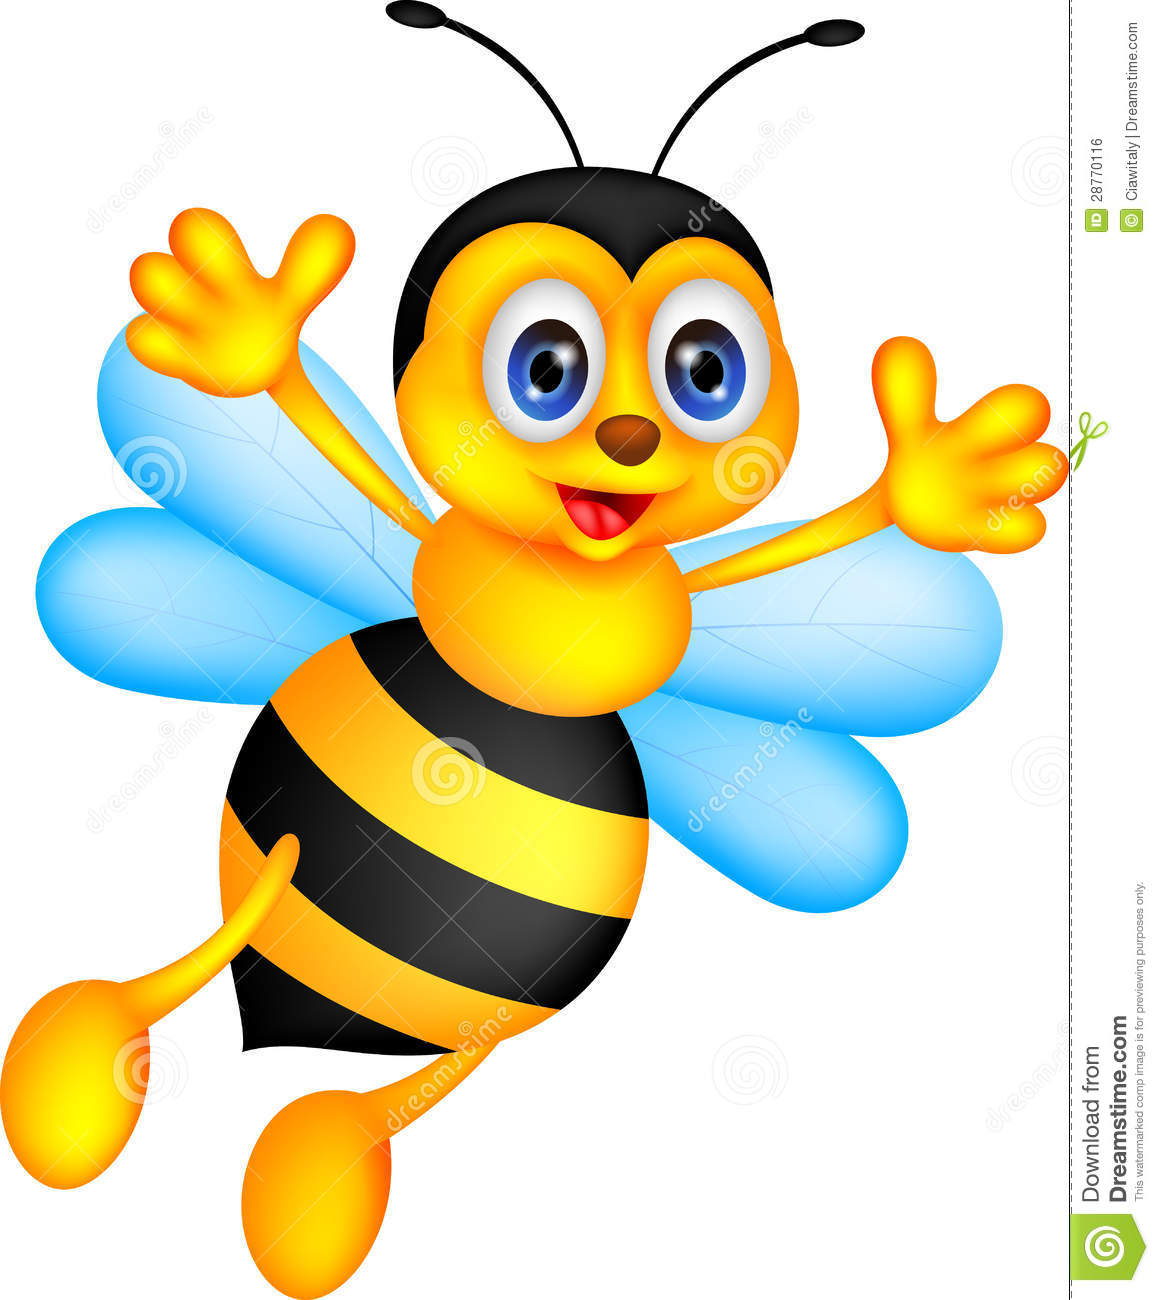 1159x1300 Cartoon Bee And Beehive Images Project Working Idea Instant Get